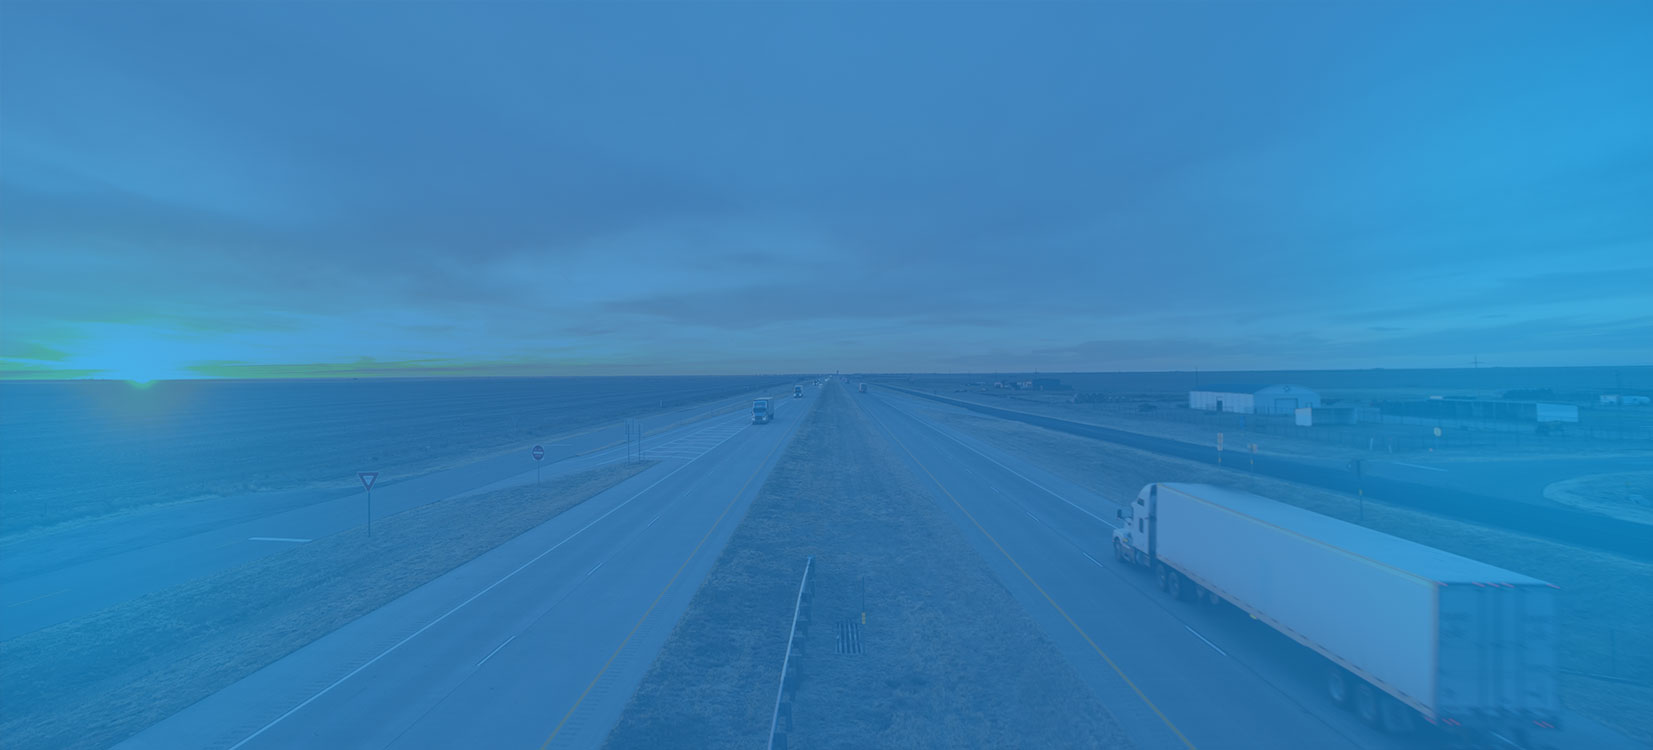 https://live-crossroads-elf.pantheonsite.io/sites/default/files/revslider/image/highway-sunset-blue.jpg